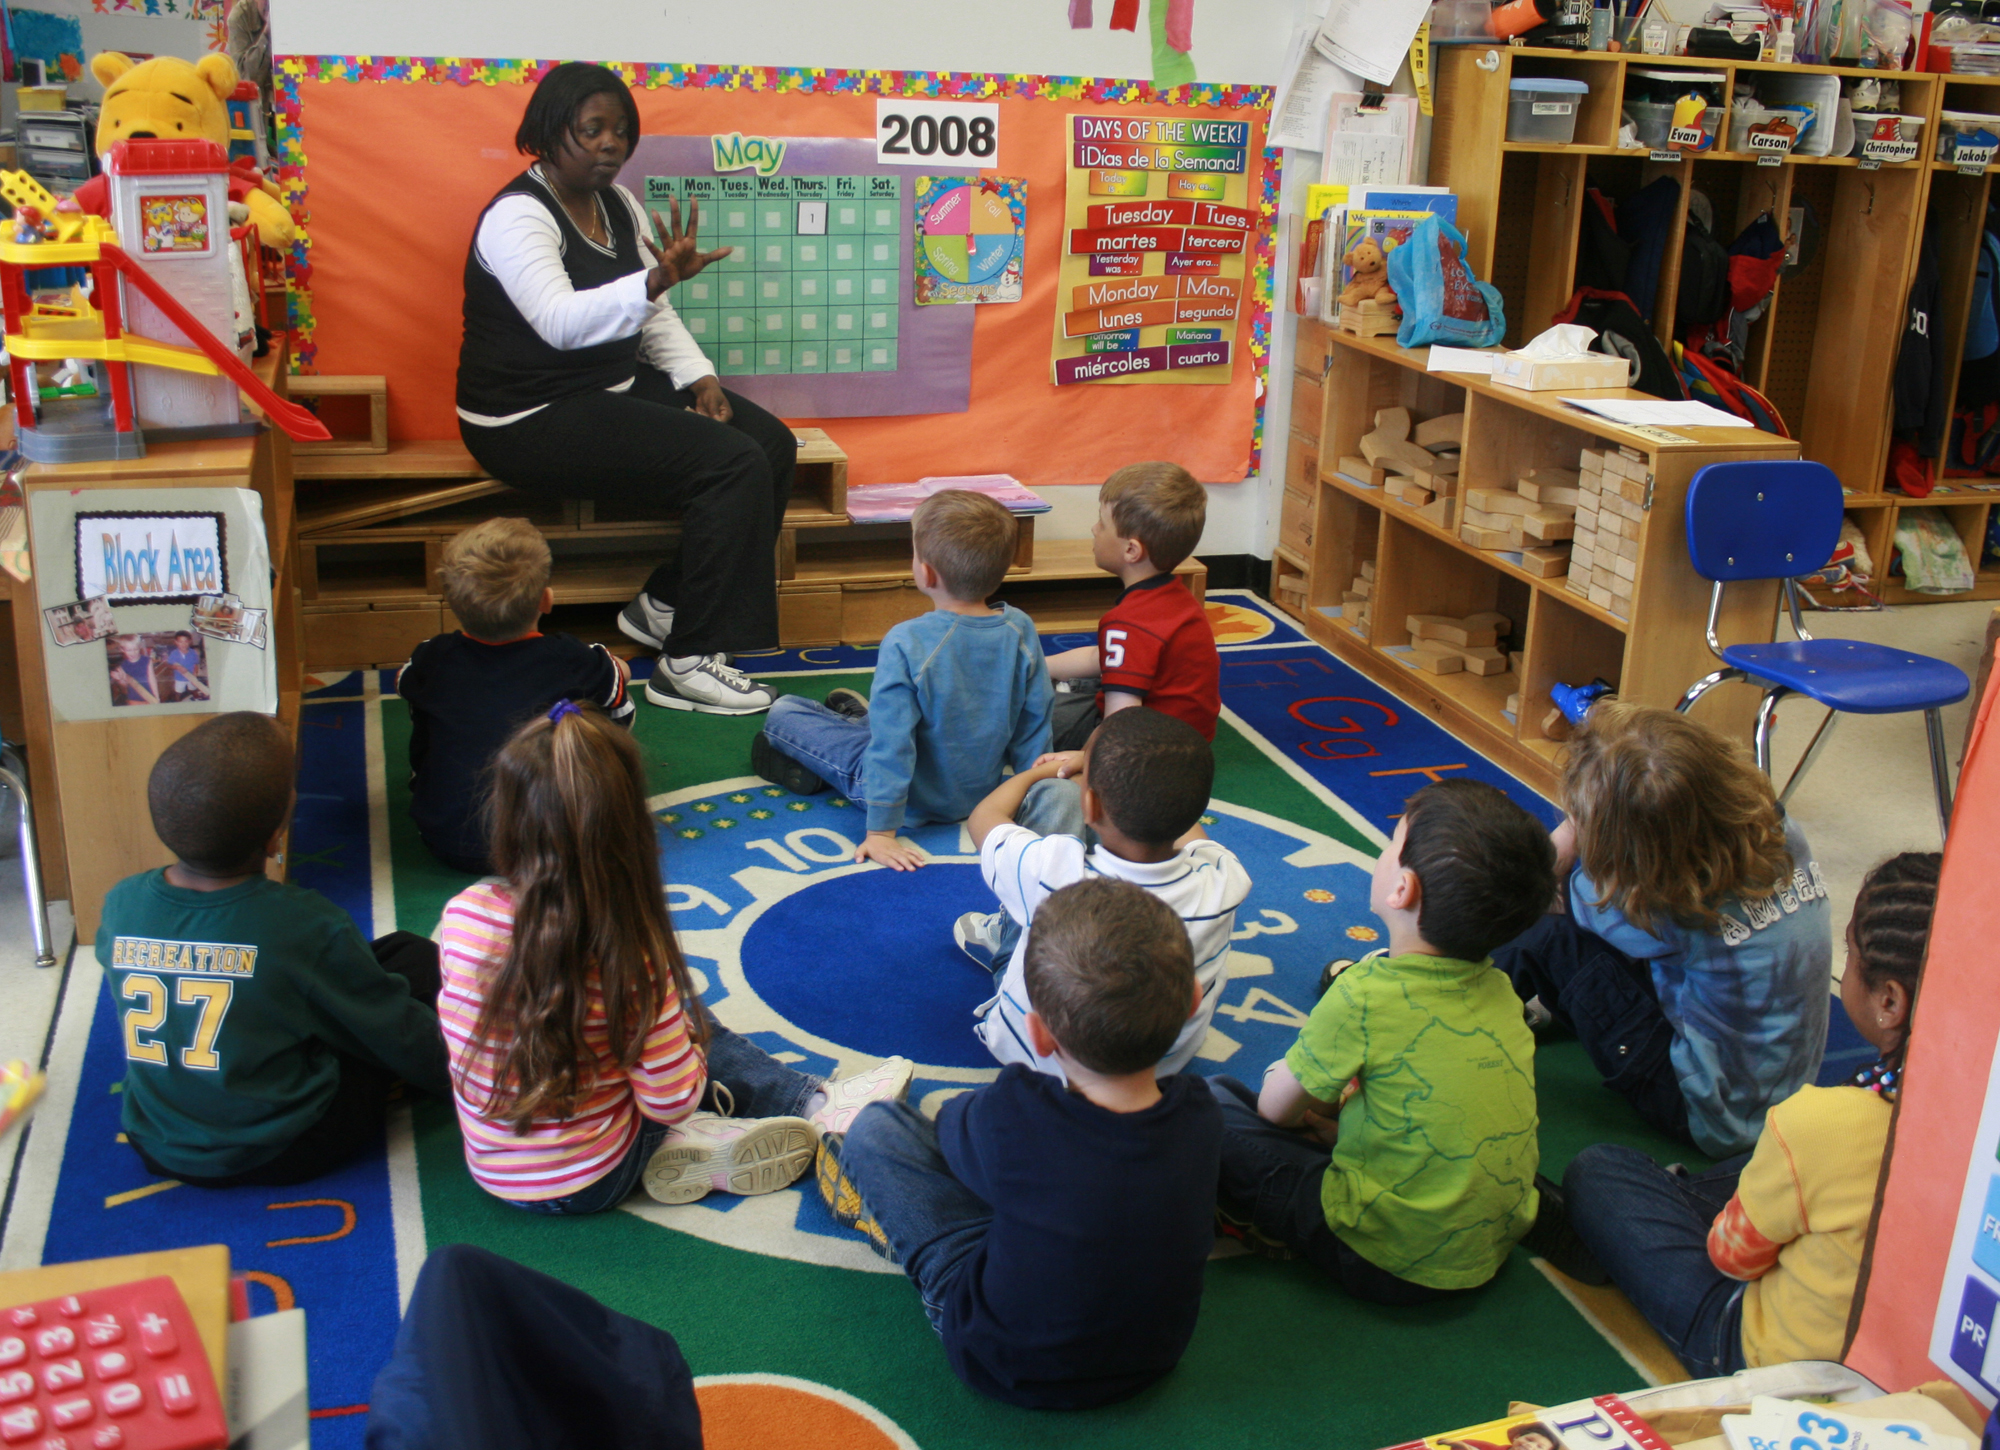 """""""School-education-learning-1750587-h"""" by woodleywonderworks - http://www.flickr.com/photos/wwworks/2458666314/. Licensed under CC BY 2.0 via Commons - https://commons.wikimedia.org/wiki/File:School-education-learning-1750587-h.jpg#/media/File:School-education-learning-1750587-h.jpg"""